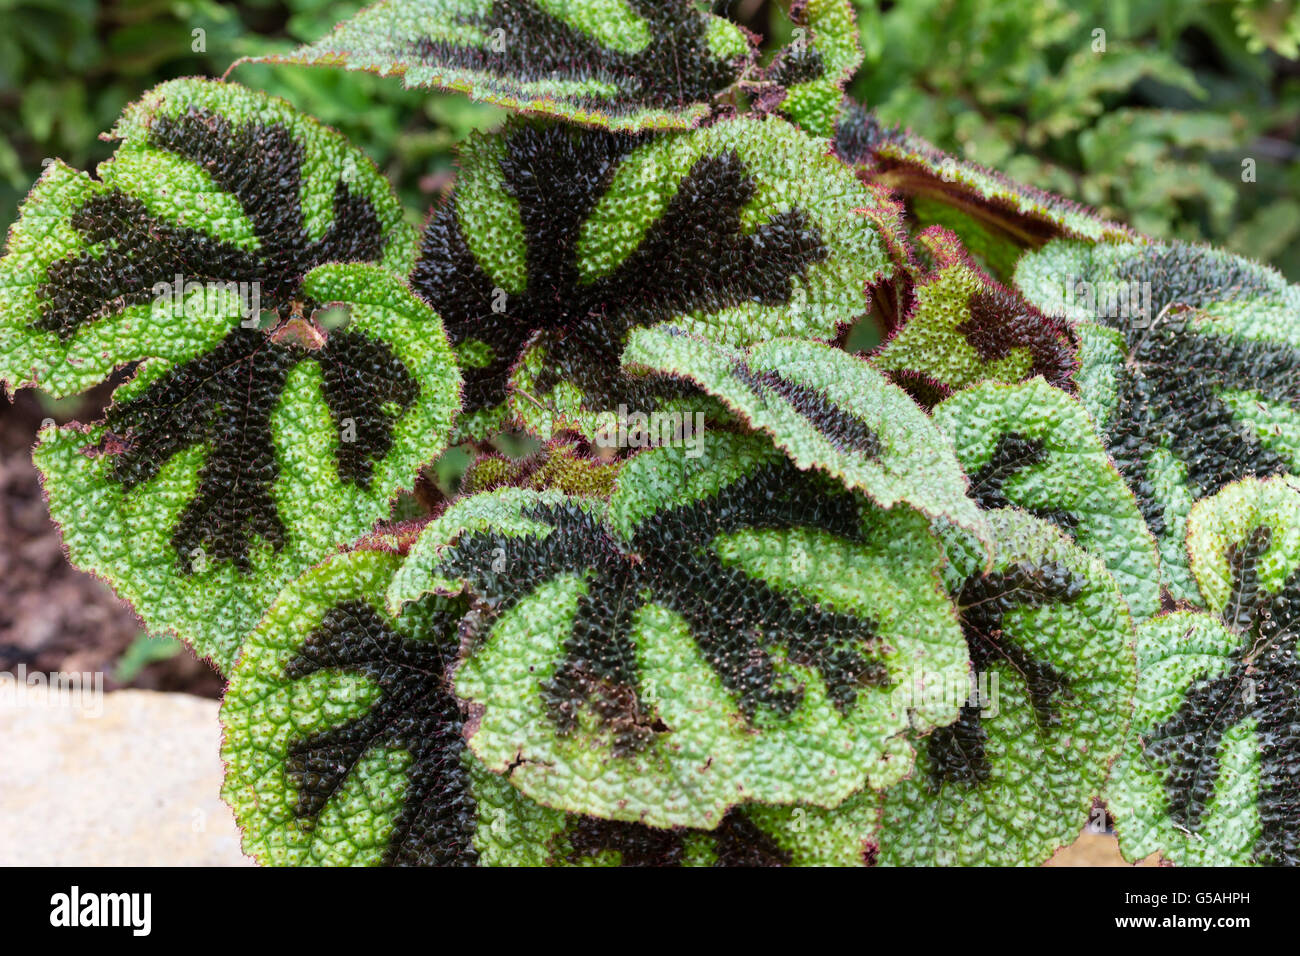 Black markings against pustular green  foliage of the iron cross begonia, Begonia masoniana - Stock Image